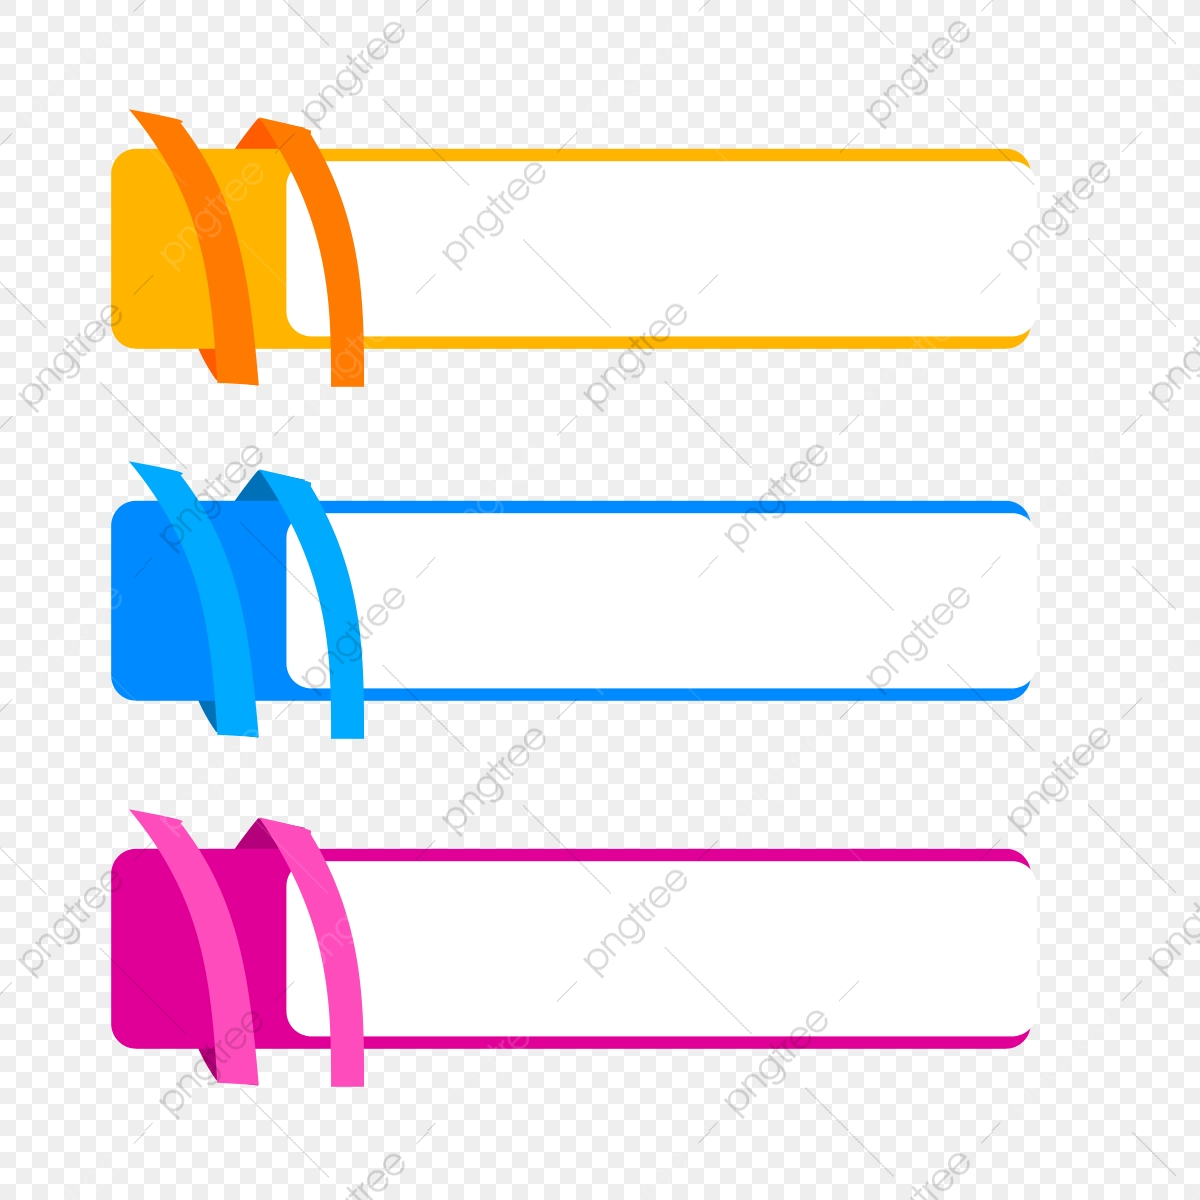 Ribbon Vector Banner Design Beauty Ribbon Banner Png Transparent Clipart Image And Psd File For Free Download